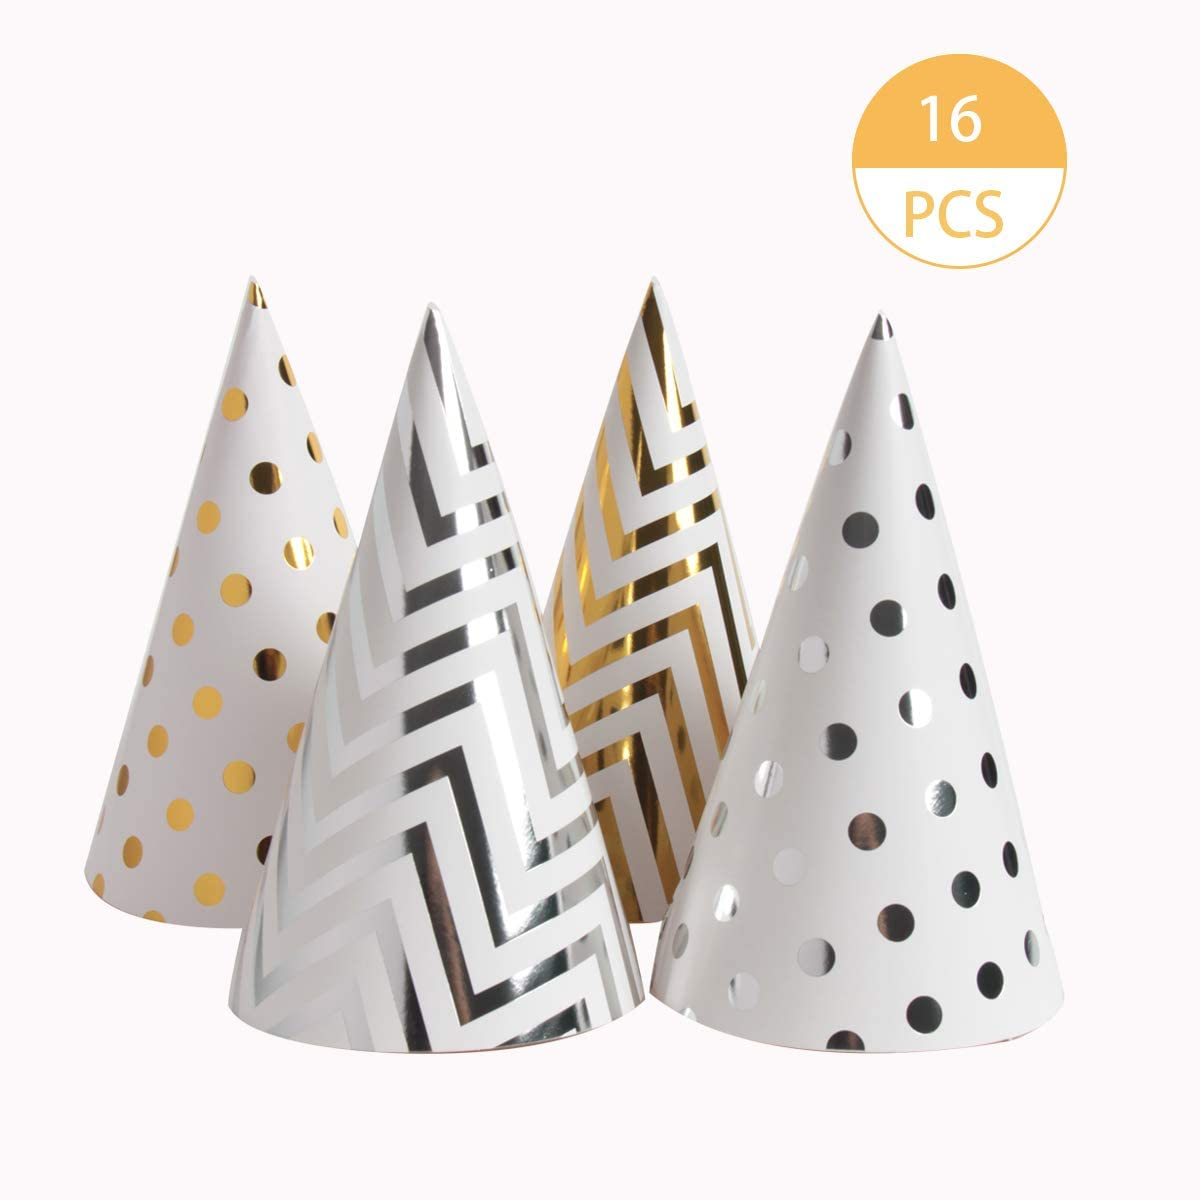 SBYURE 16 Pieces Happy Birthday Party Hats for Children and Adults, Fun Birthday Jamboree Party Hats,Gold, Silver, Medium